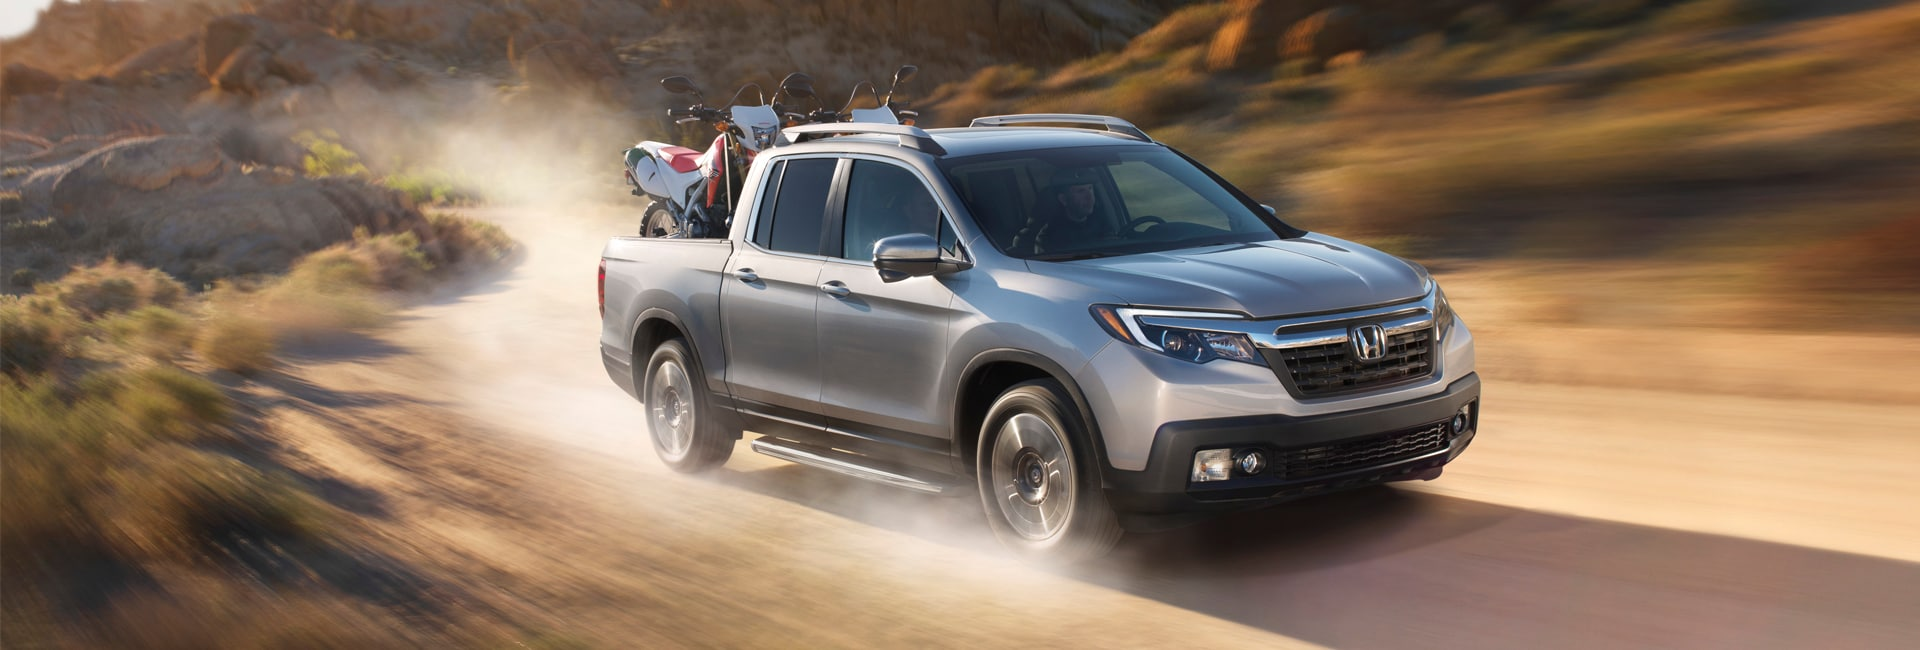 Honda Ridgeline Exterior Vehicle Features